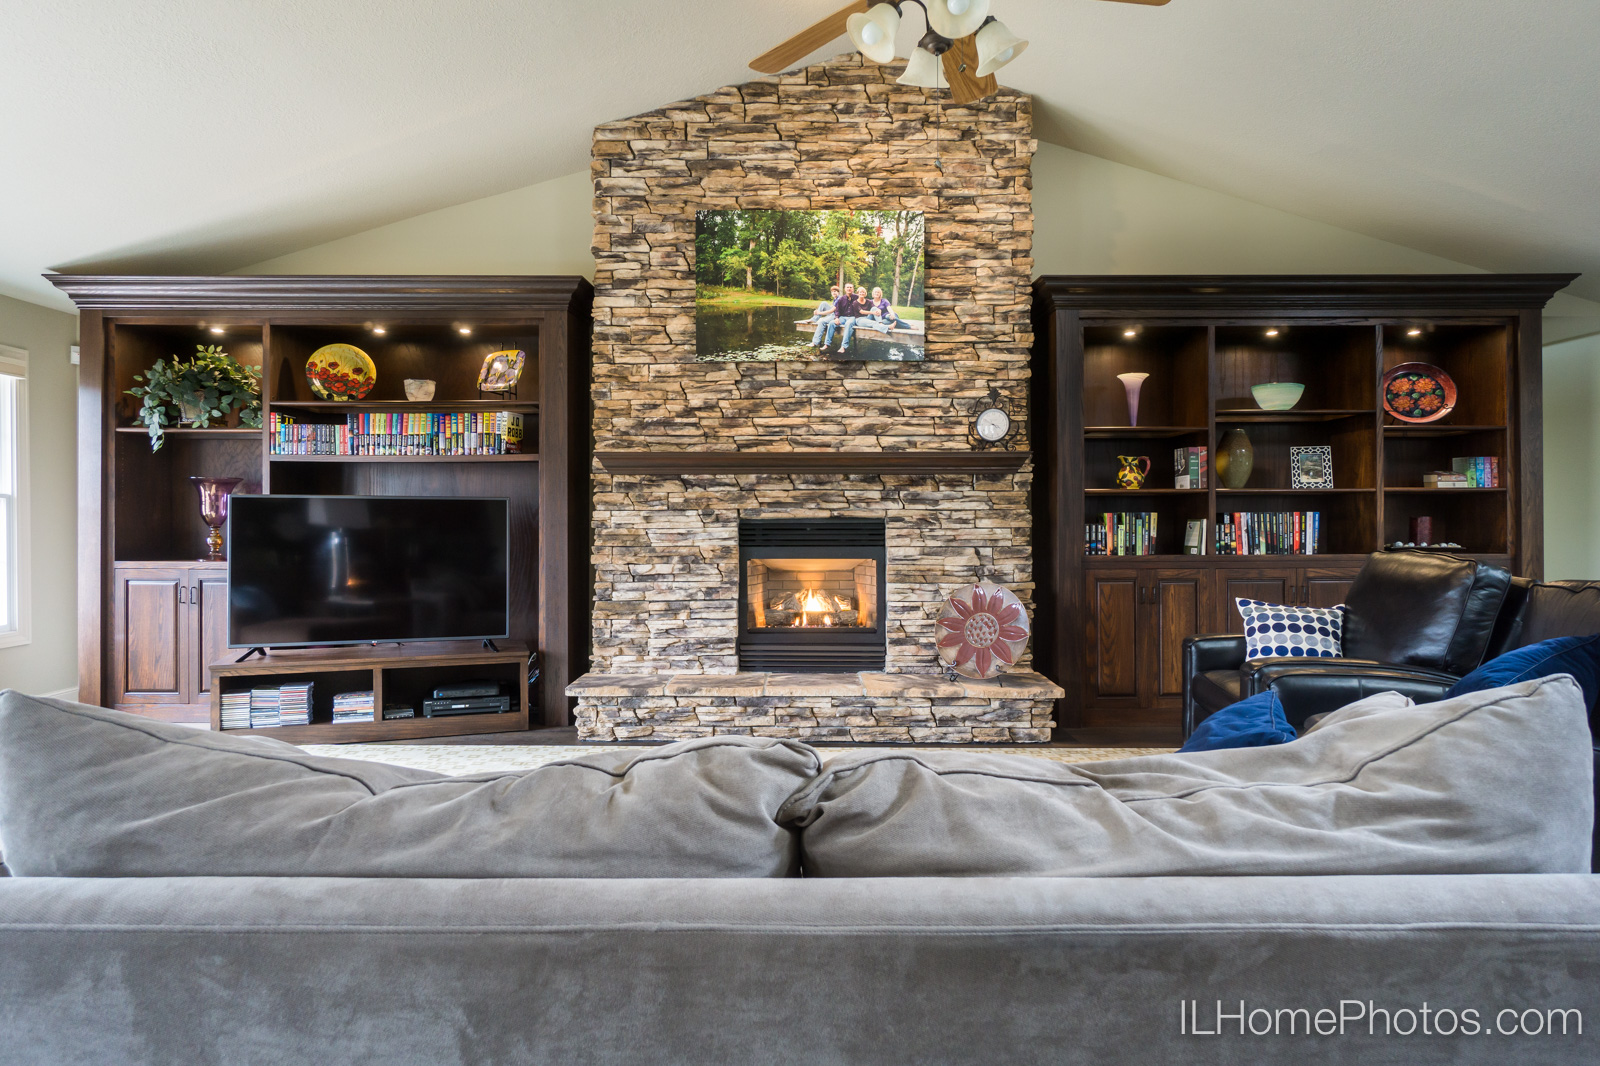 Interior living room photograph for real estate :: Illinois Home Photography by Michael Gowin, Lincoln, IL